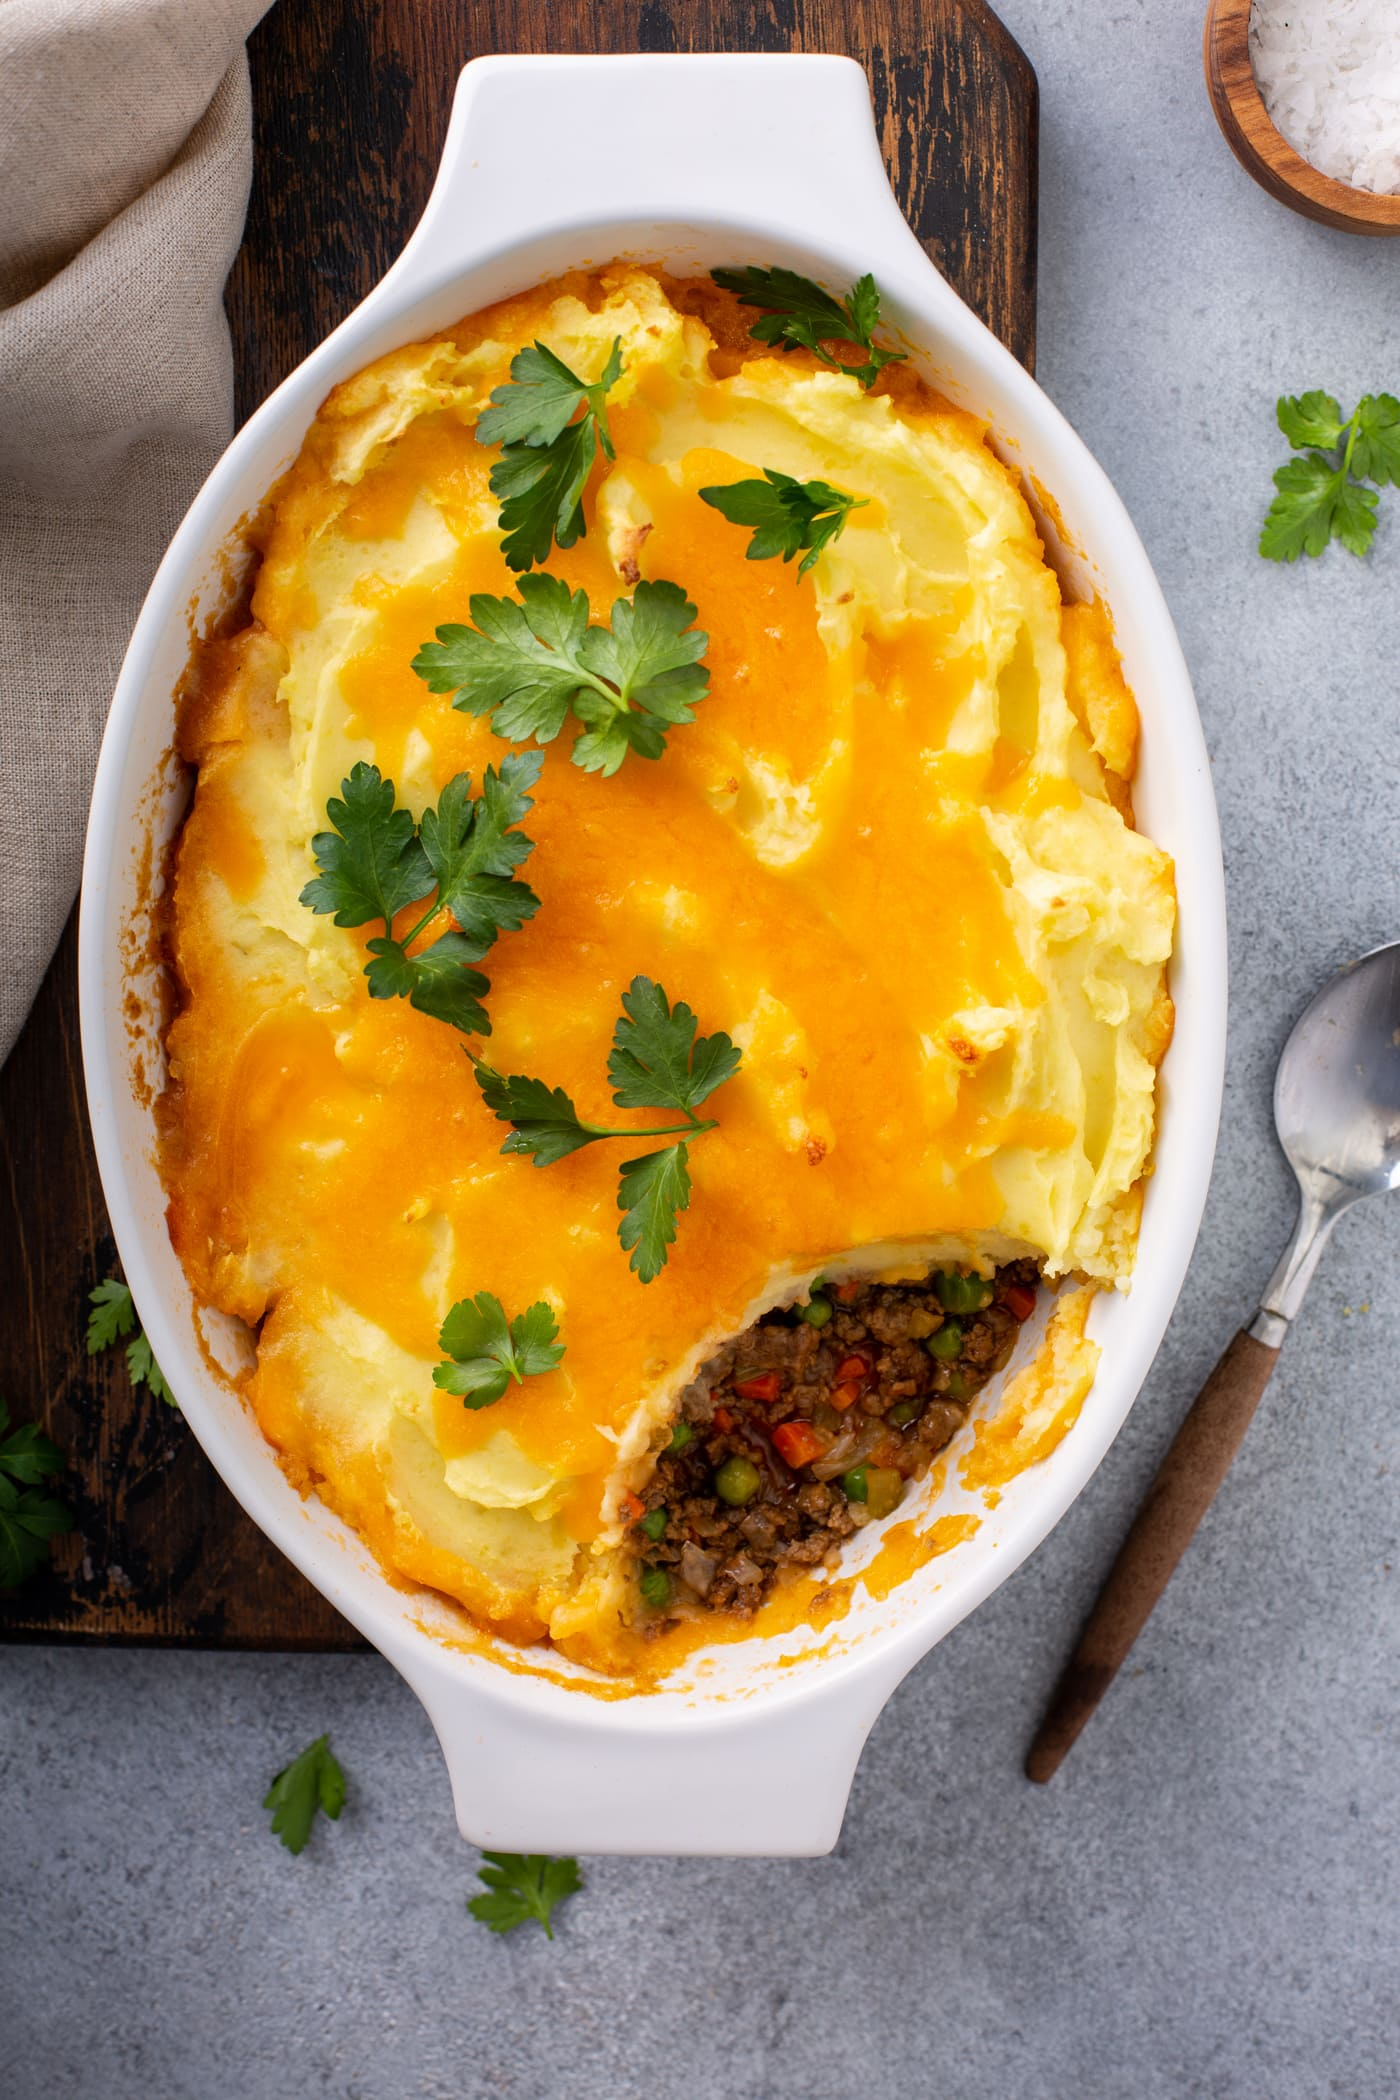 A casserole dish of shepherd's pie. A serving has been removed so you can see the ground beef, carrots and peas in the filling. It is topped with mashed potatoes and melted cheese with a few parsley leaves on top.